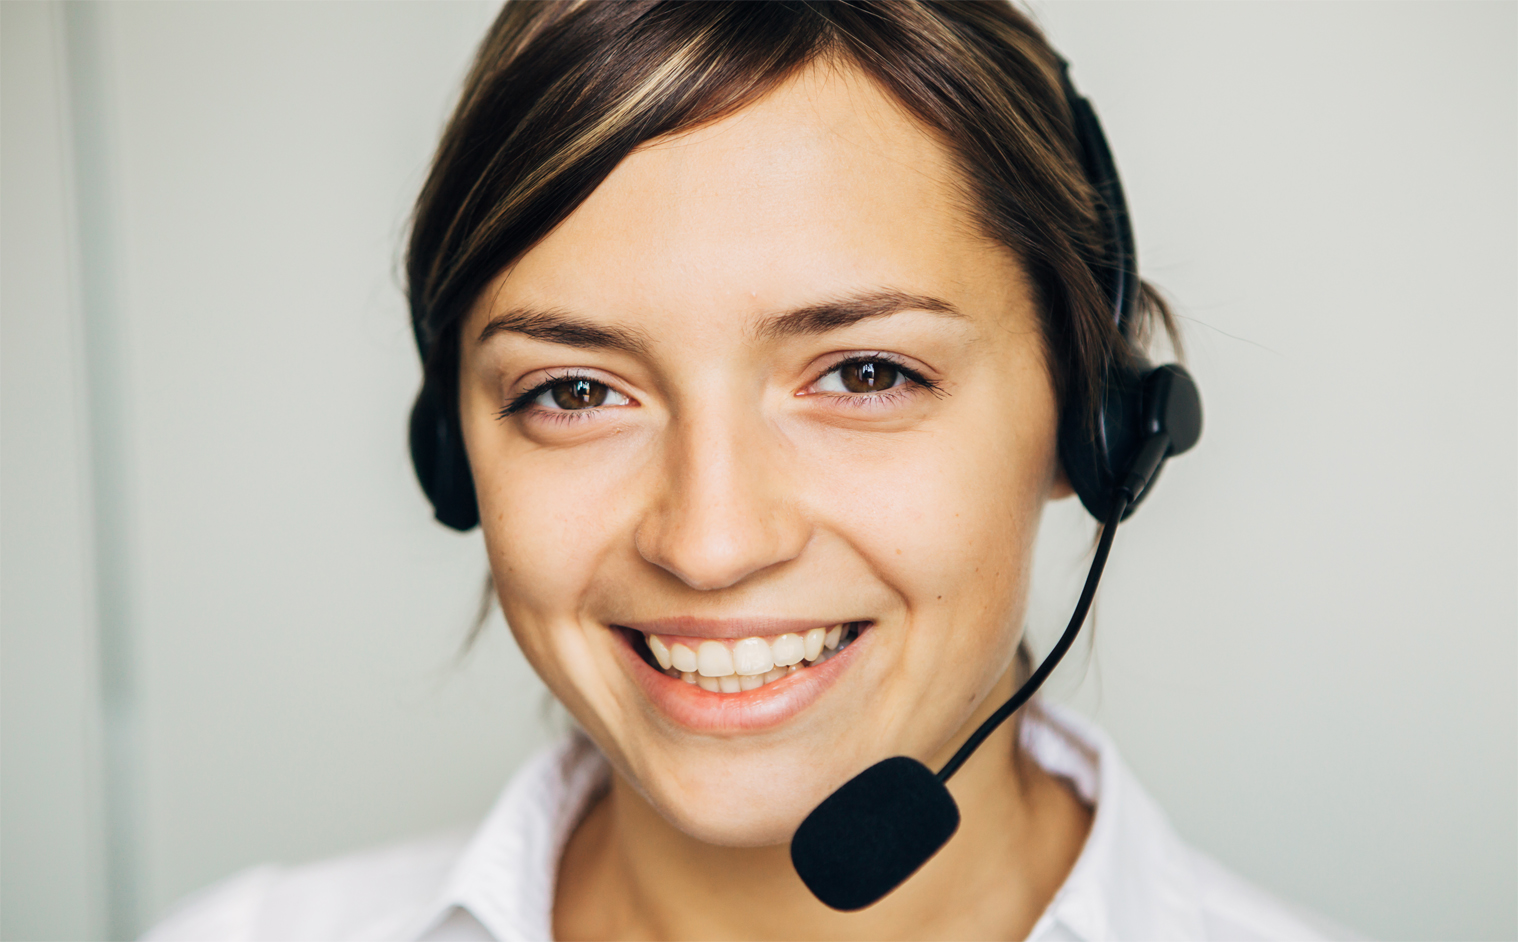 Professional Answering Services - 24 Hour Answering Service